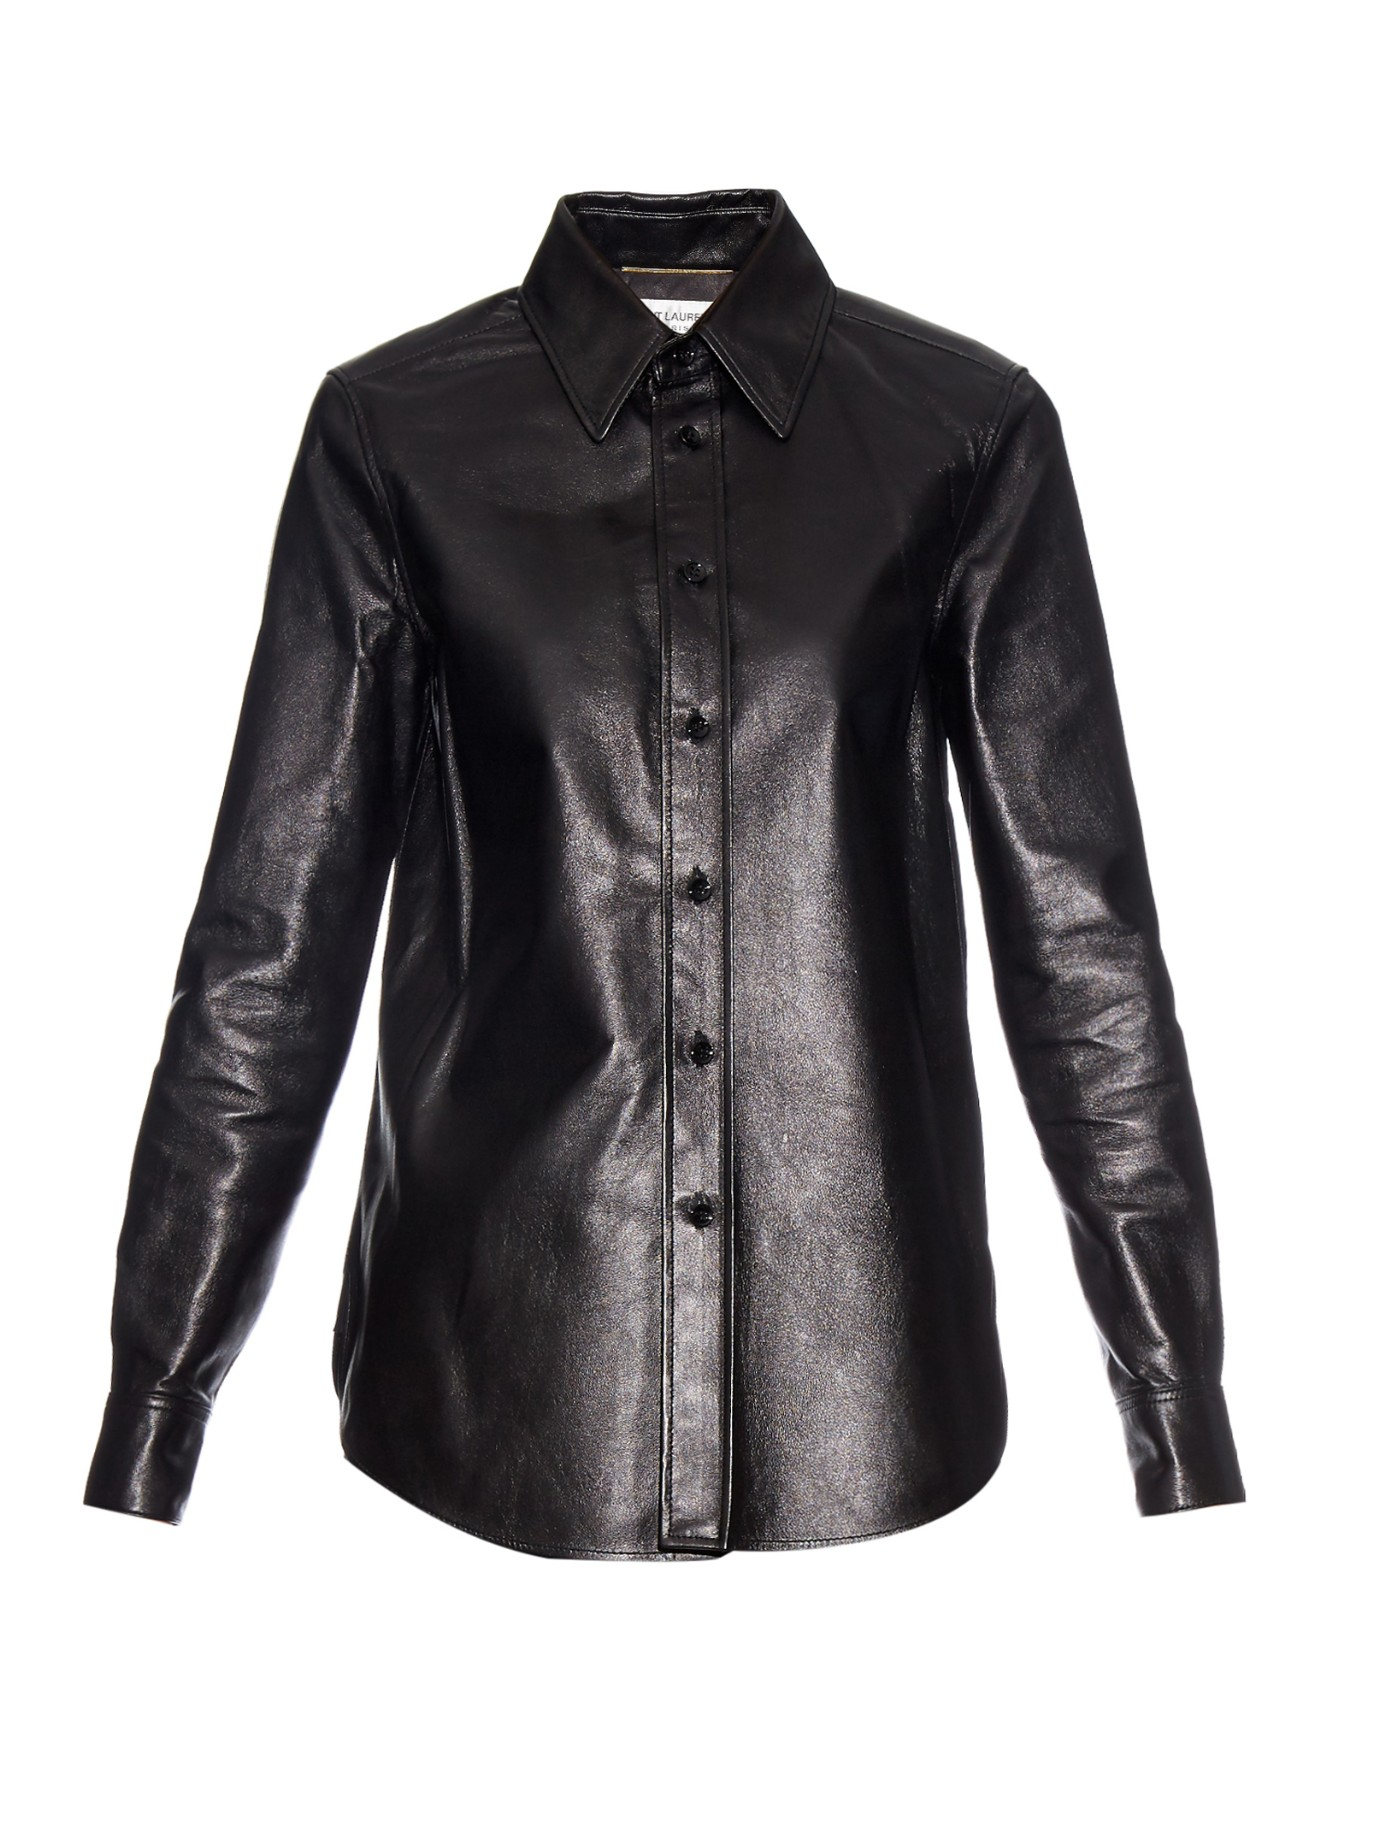 Buy low price, high quality black leather long sleeved shirt with worldwide shipping on topinsurances.ga yeqedu Nightclub Sexy PU Leather Long Sleeve Shirt For Women Black/Red Collar US $ / piece Free Shipping. Orders (0) Alan women clothes. Add to Wish List. 2 Colors Available.